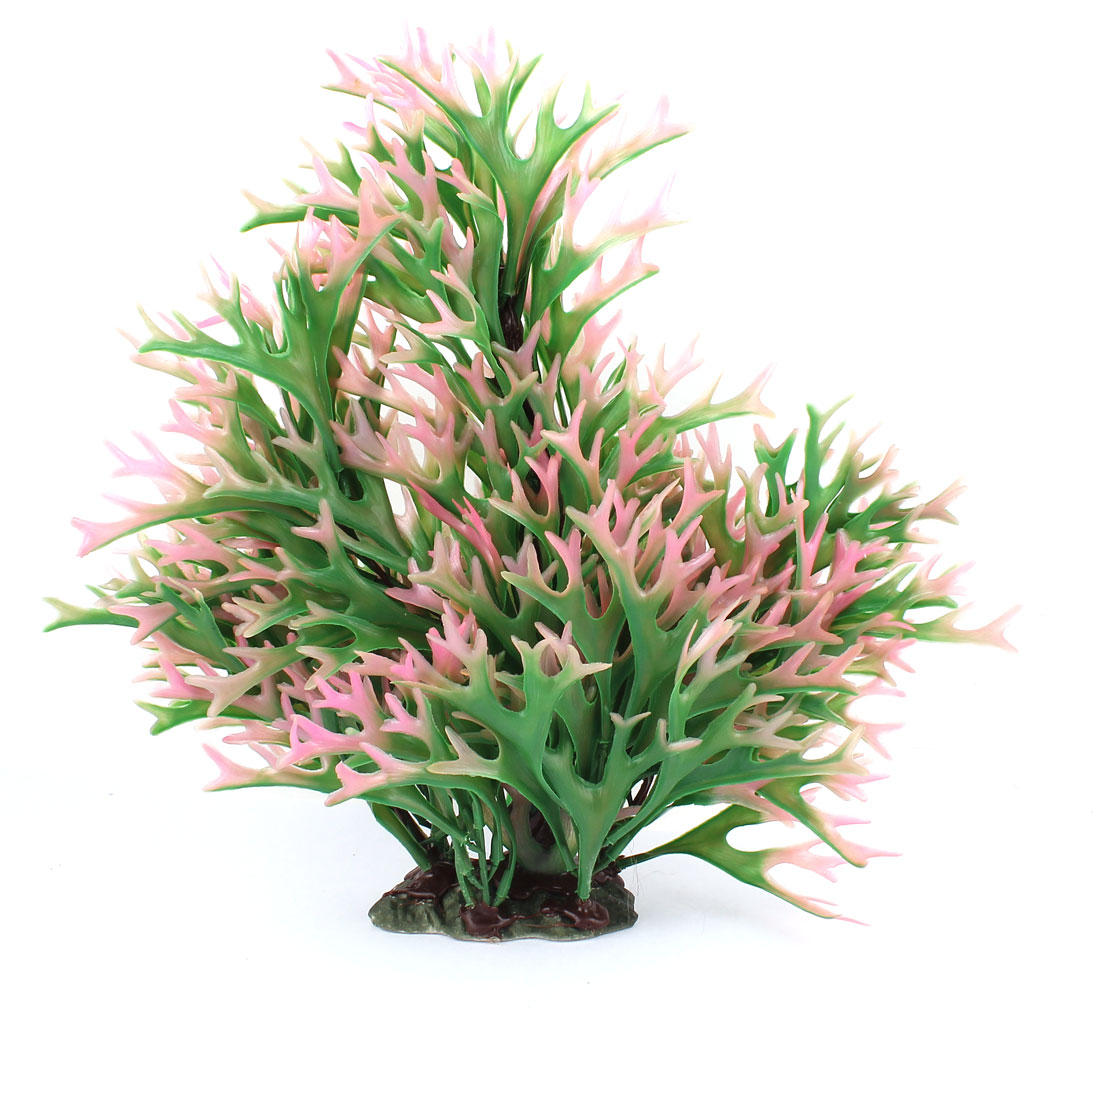 Plastic Fish Tank Aquarium Artificial Emulational Plant Decor 36cm High Green Pink